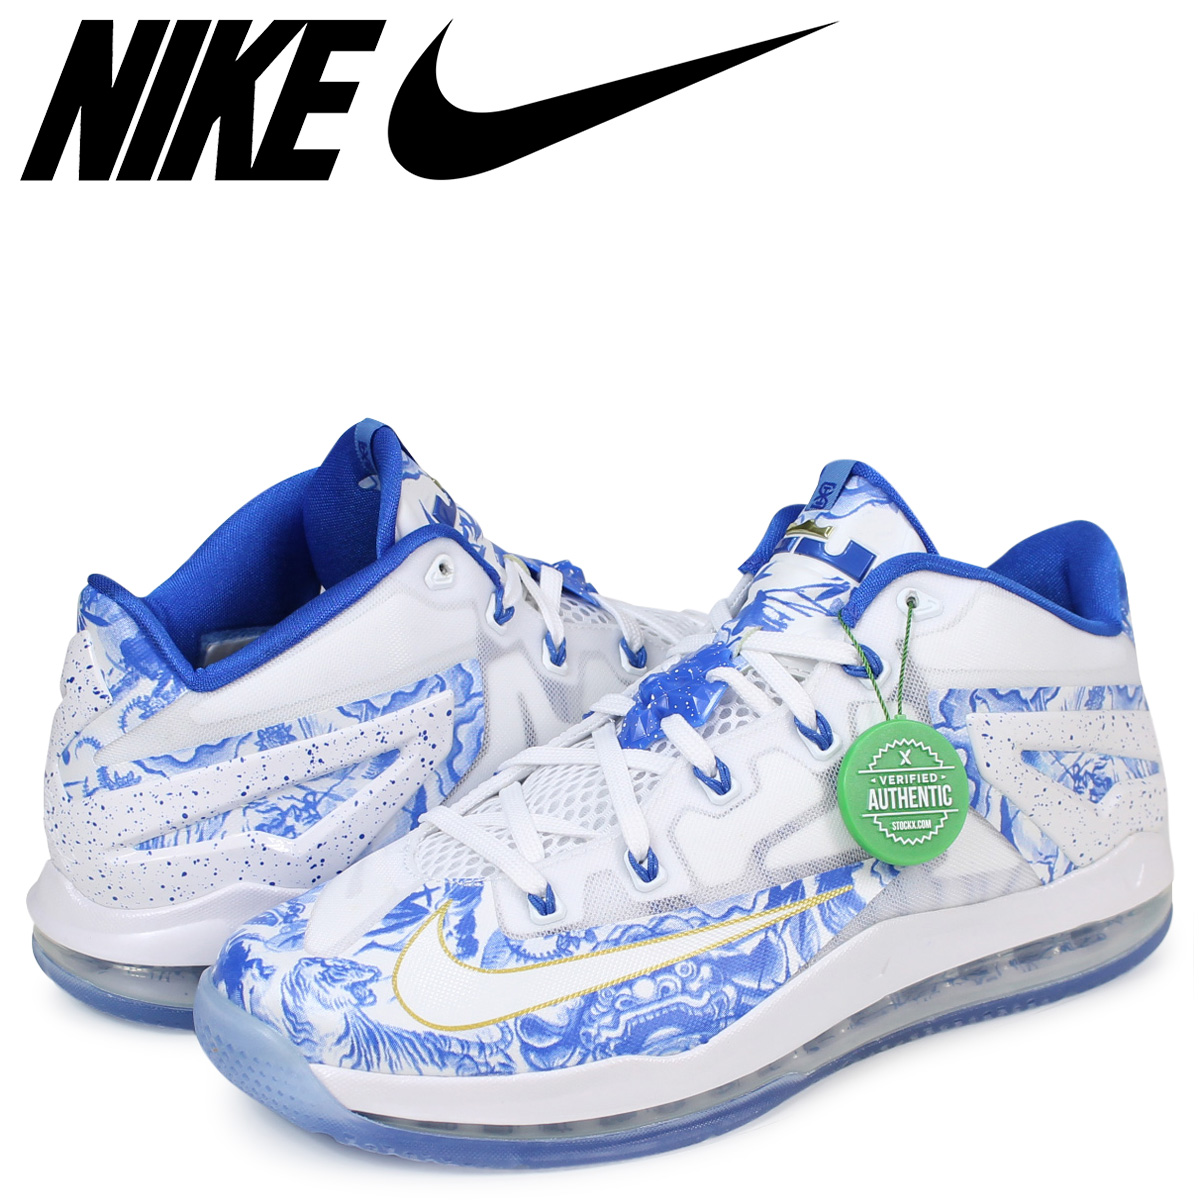 outlet store 4fff1 3a005 NIKE LEBRON XI CHINA PACK Nike Revlon 11 sneakers 683,253-144 men s white  ...